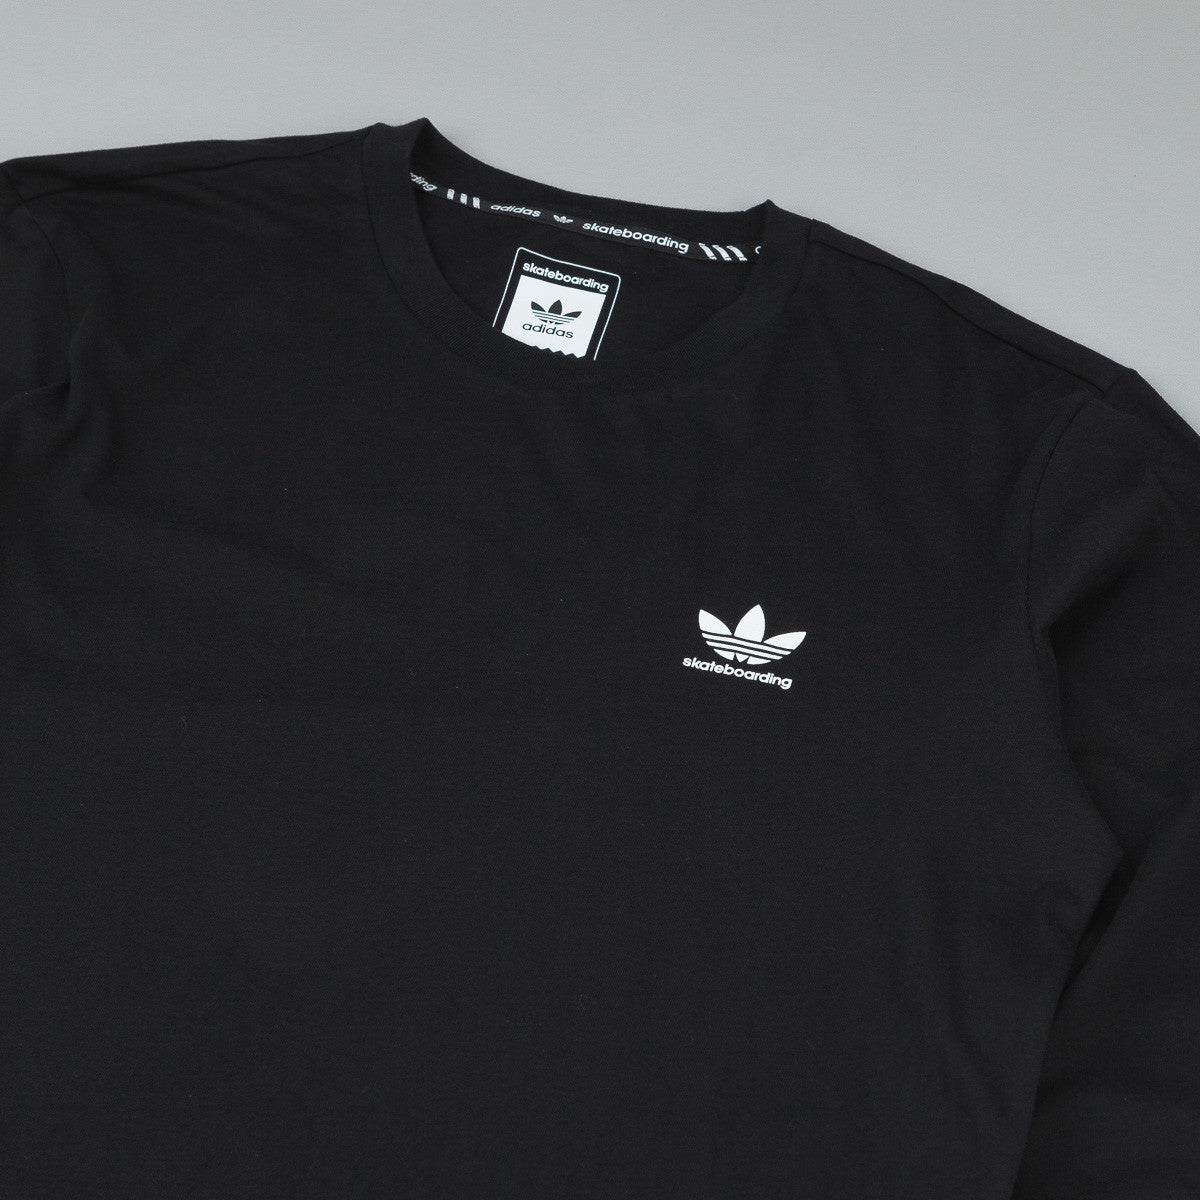 Adidas ADV Long Sleeve T-Shirt - Black